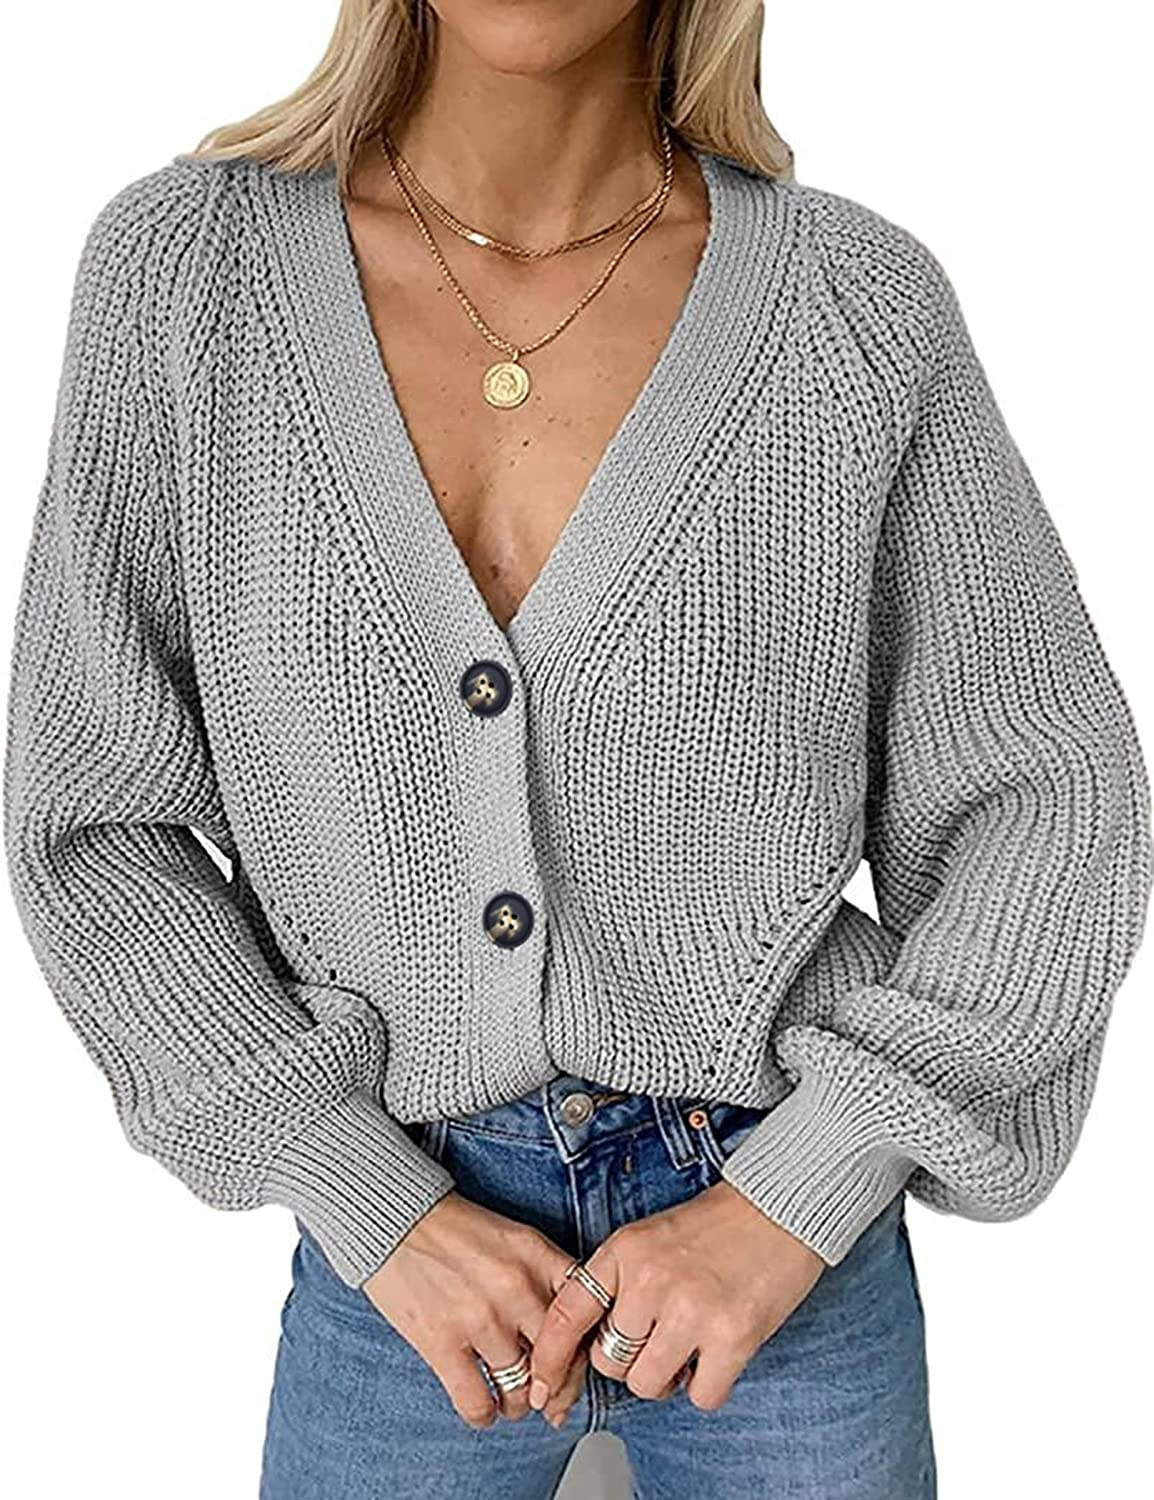 Chigant Women's Long Sleeve Cable Knit Sweater Open Front Cardigan Button Loose Outerwear